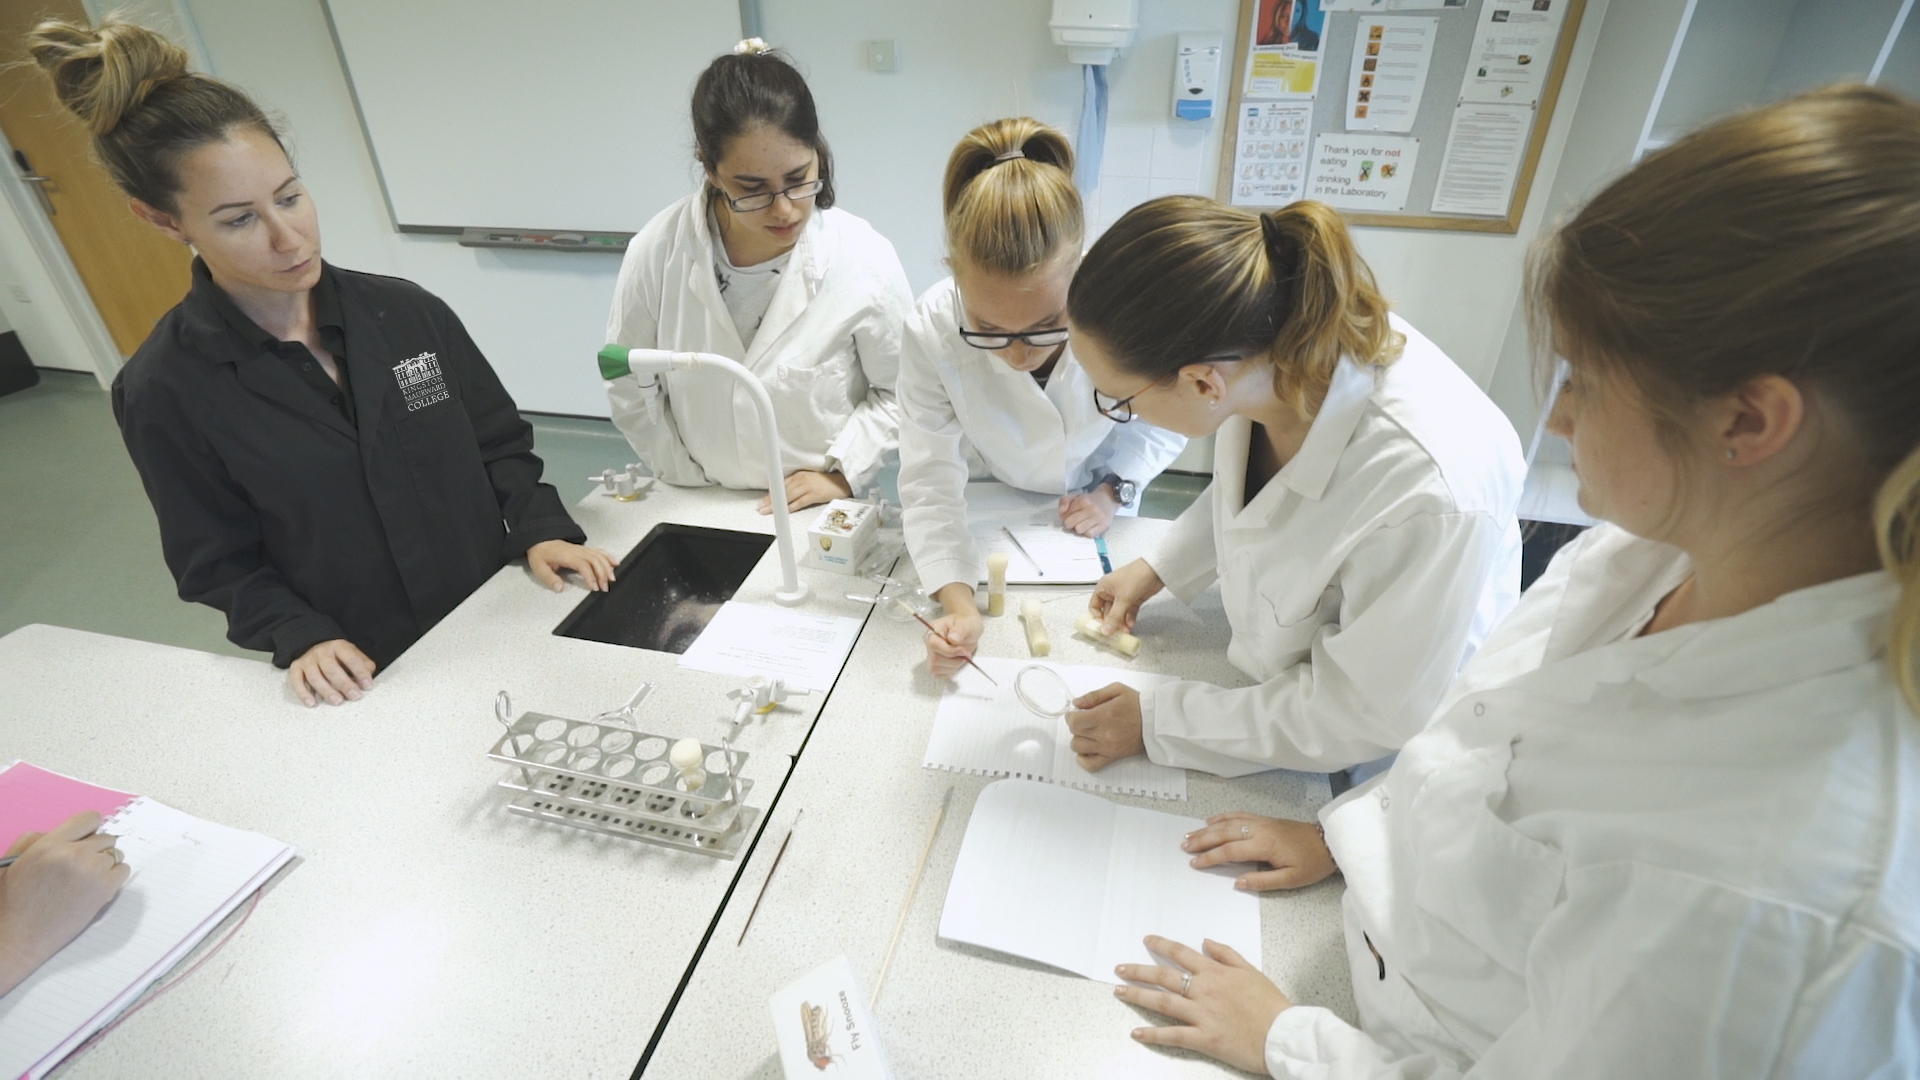 Group of students in lab coats studying, stood over a desk.